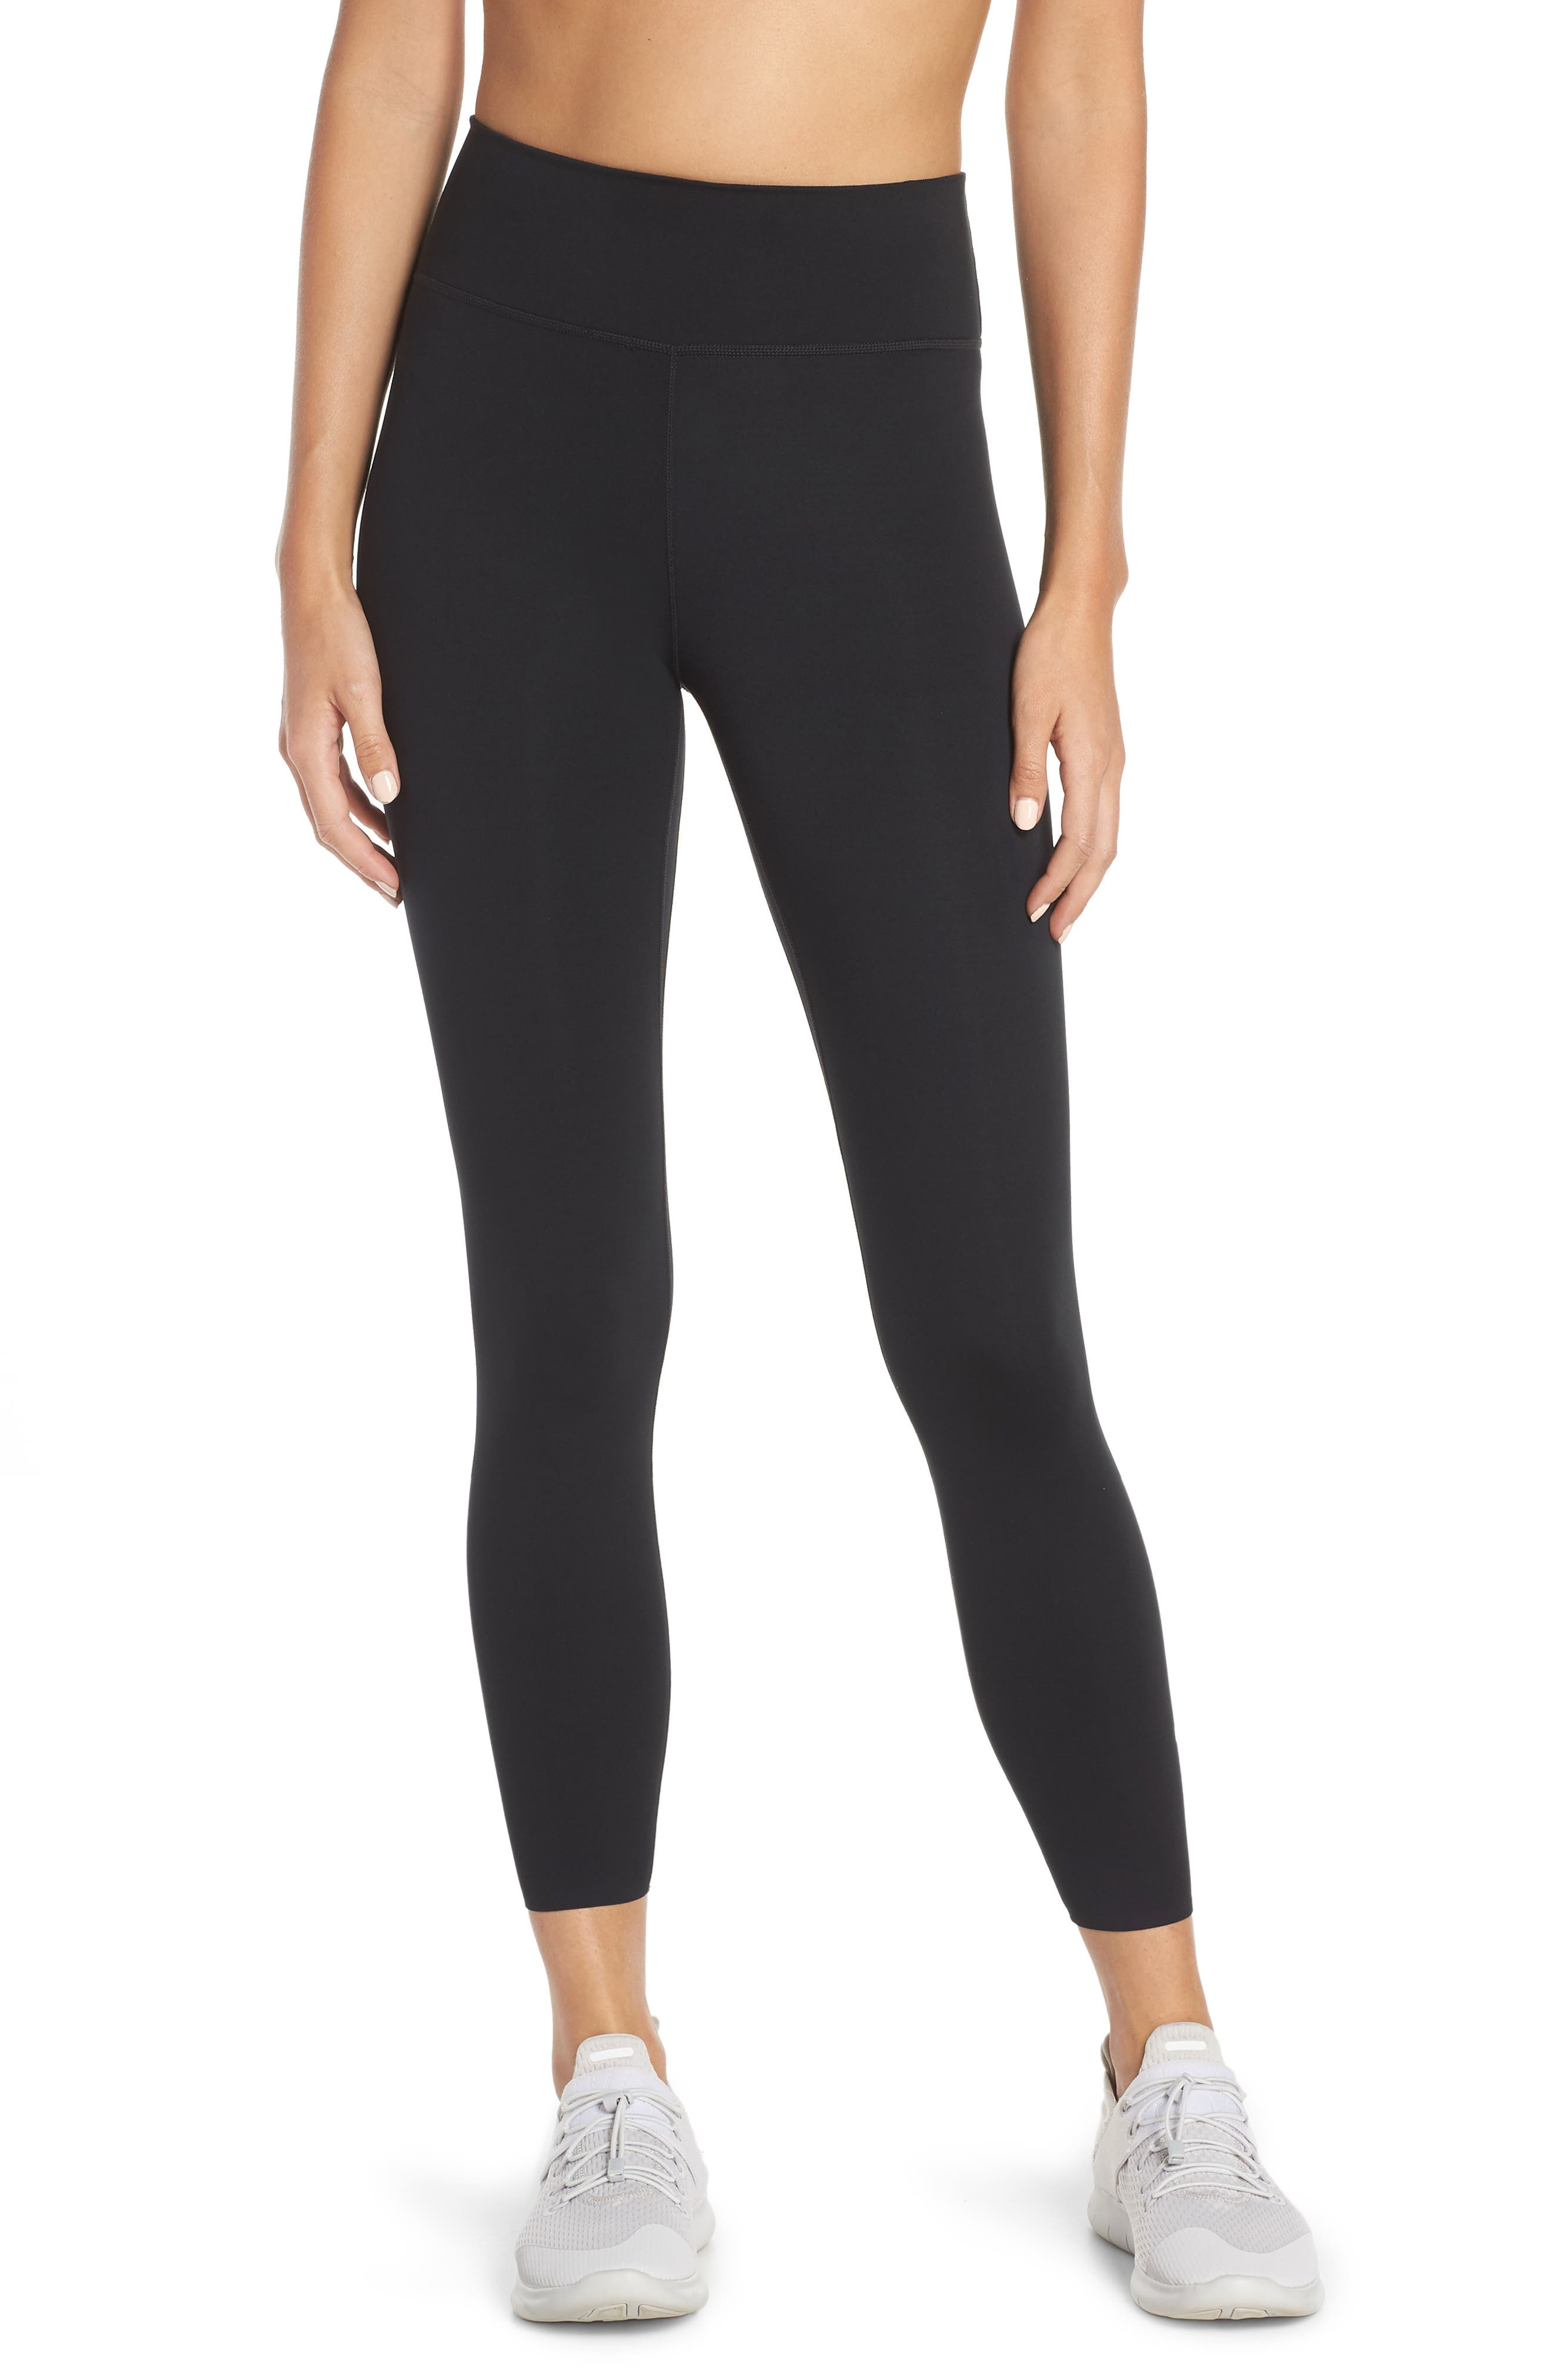 Nike One Lux 7/8 Tights (Regular Retail Price: $90)